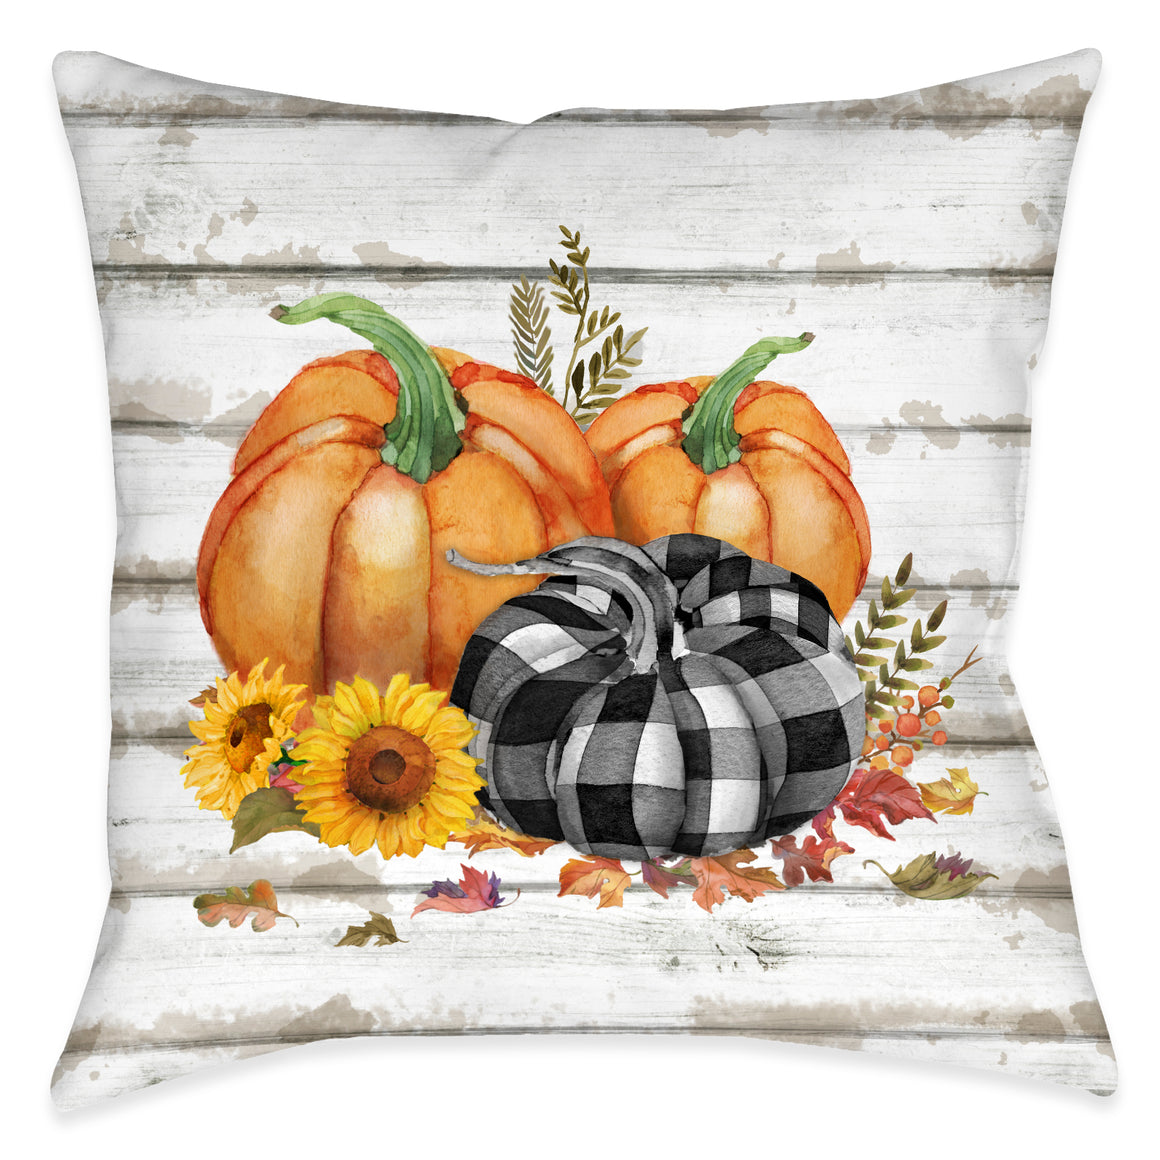 Rustic Fall Indoor Decorative Pillow